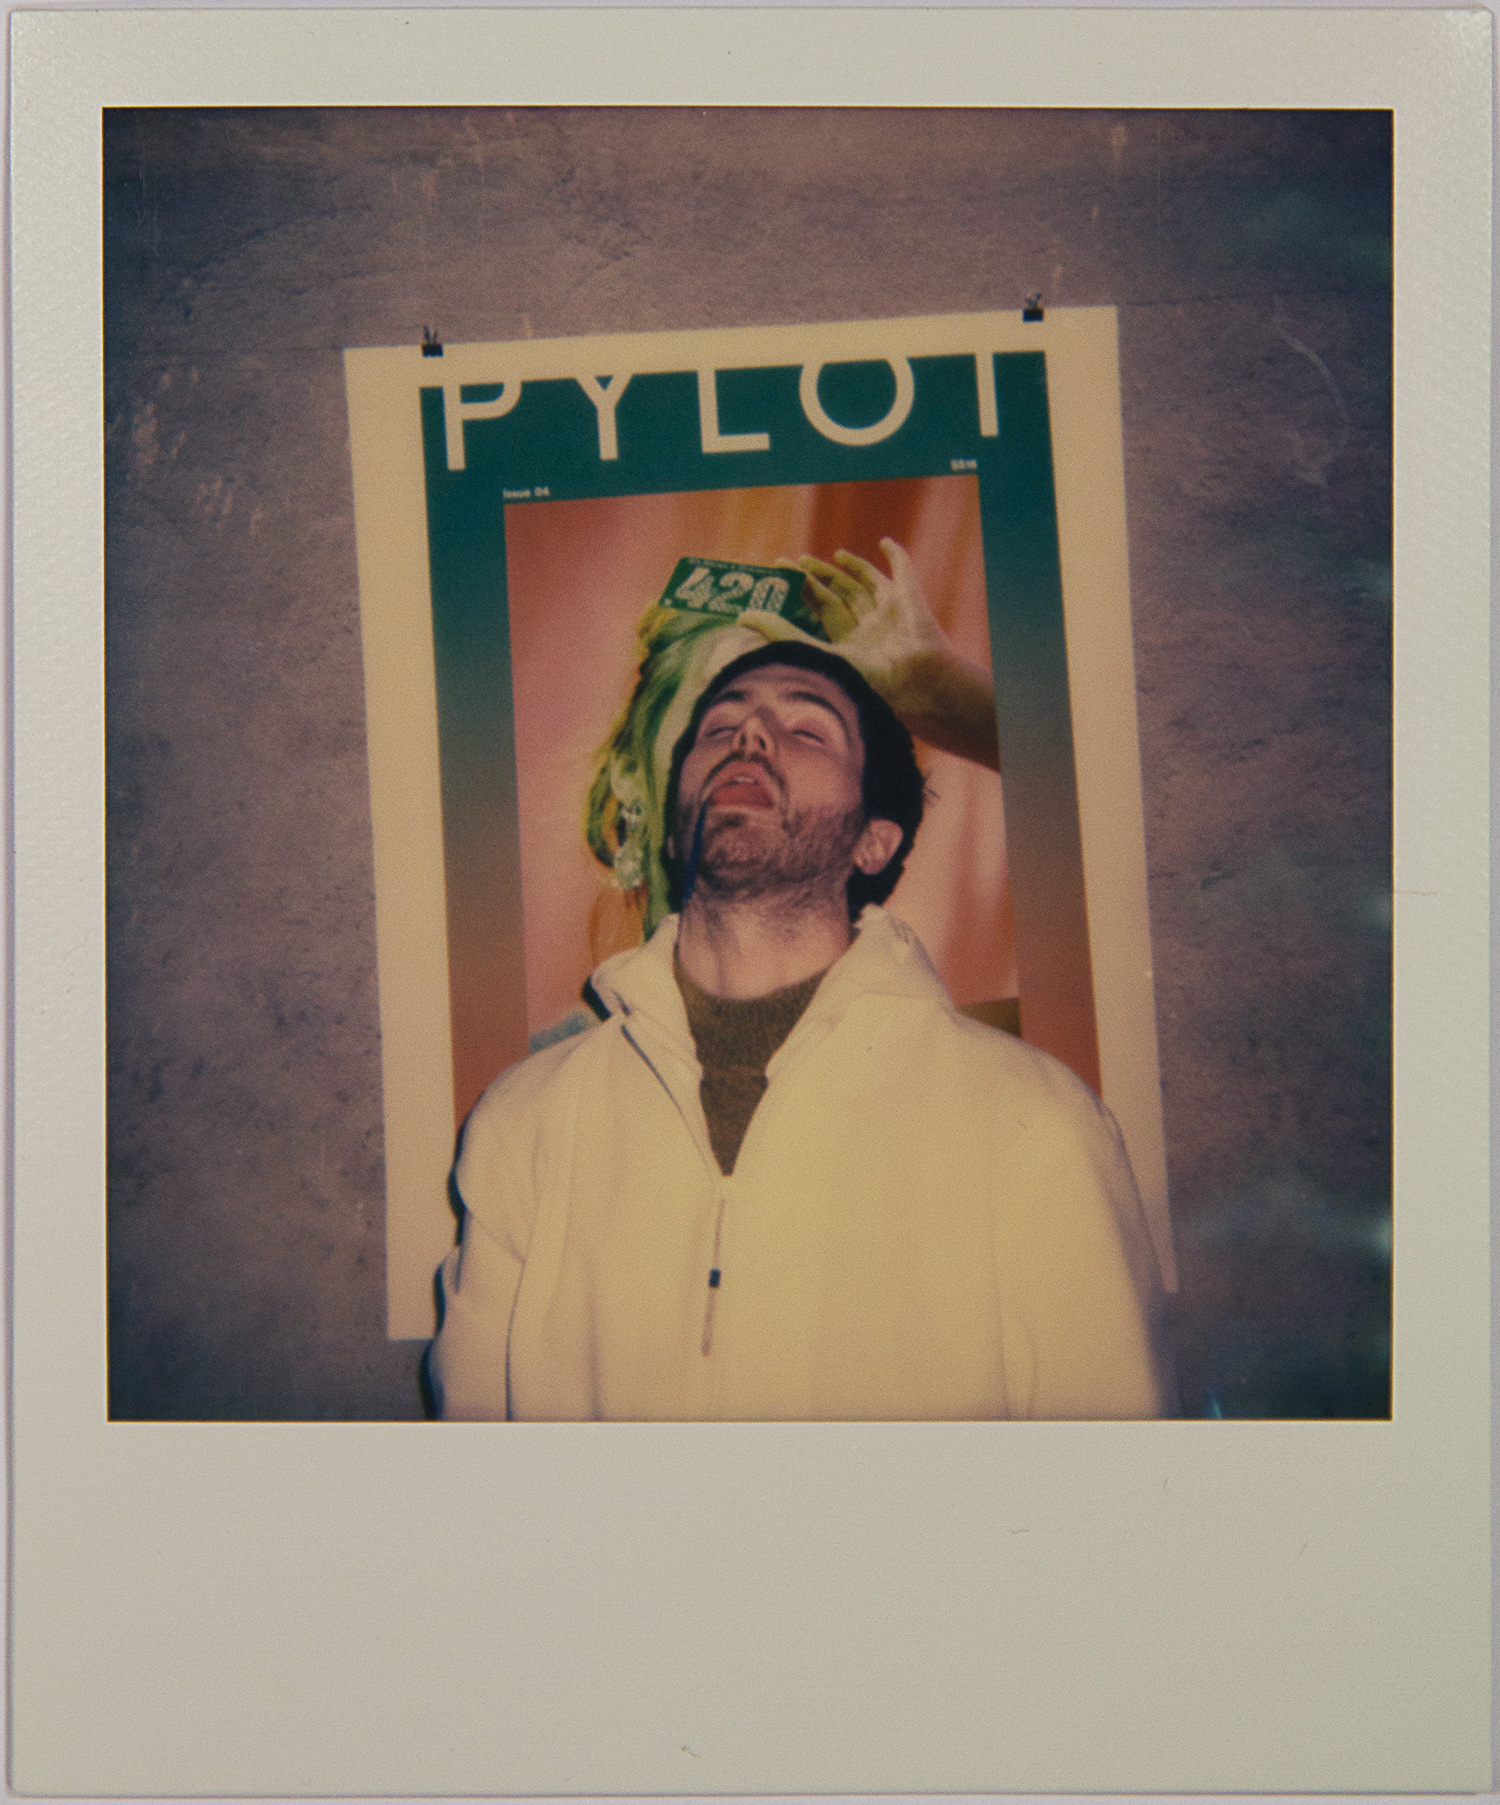 PYLOT ISSUE 04 LAUNCH PARTY IMPOSSIBLE PROJECT 10